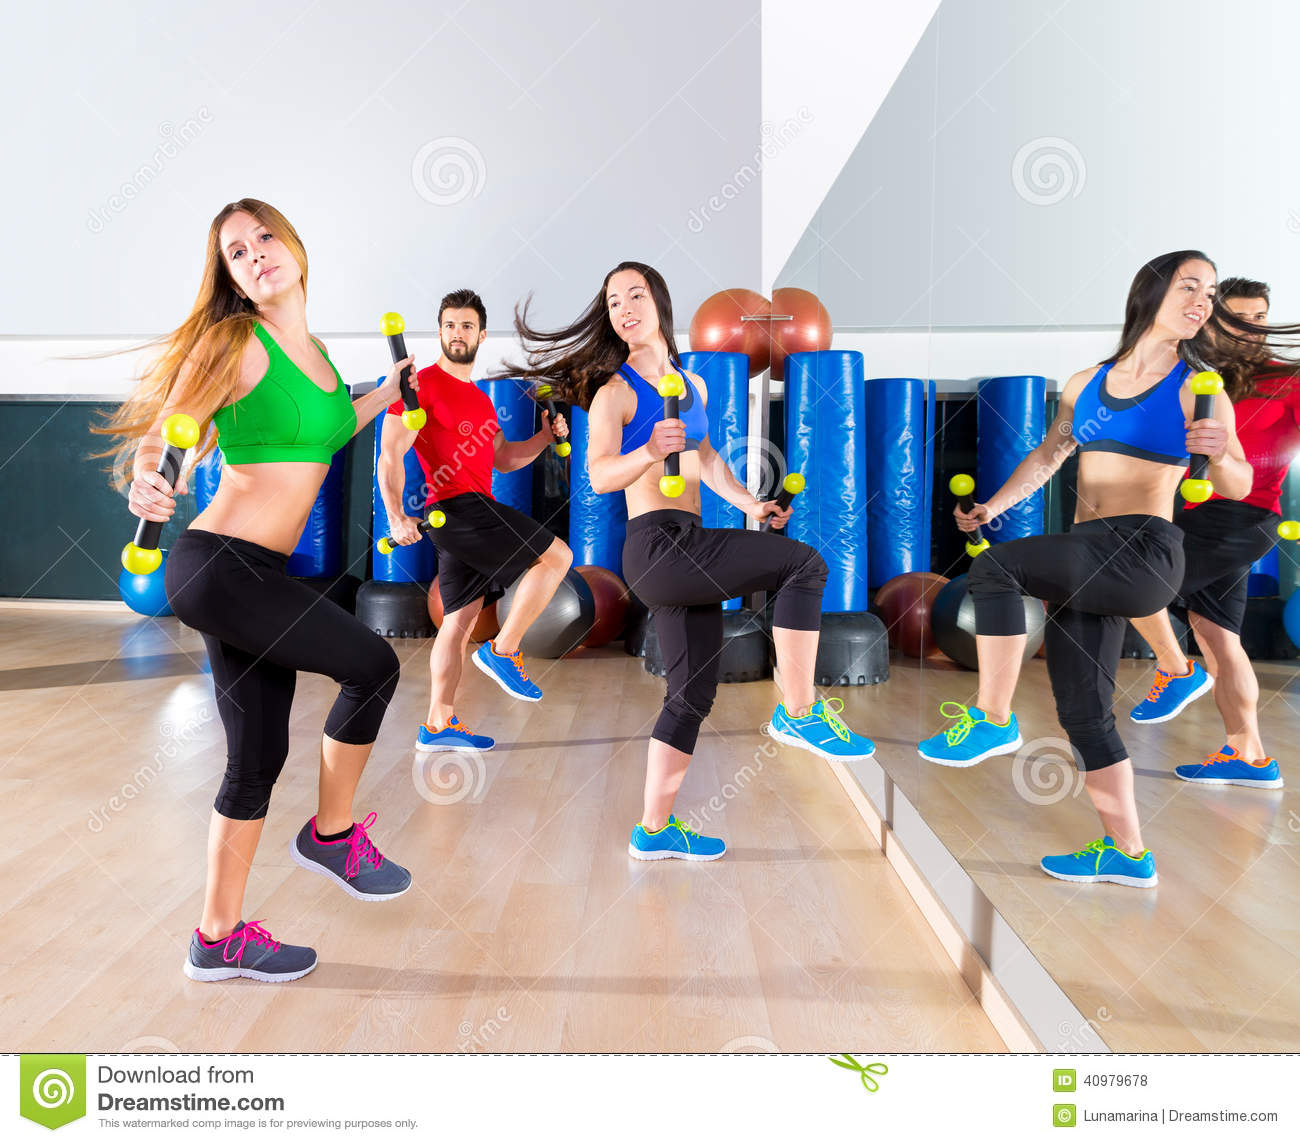 Workout Photography: Zumba Dance Cardio People Group At Fitness Gym Stock Photo